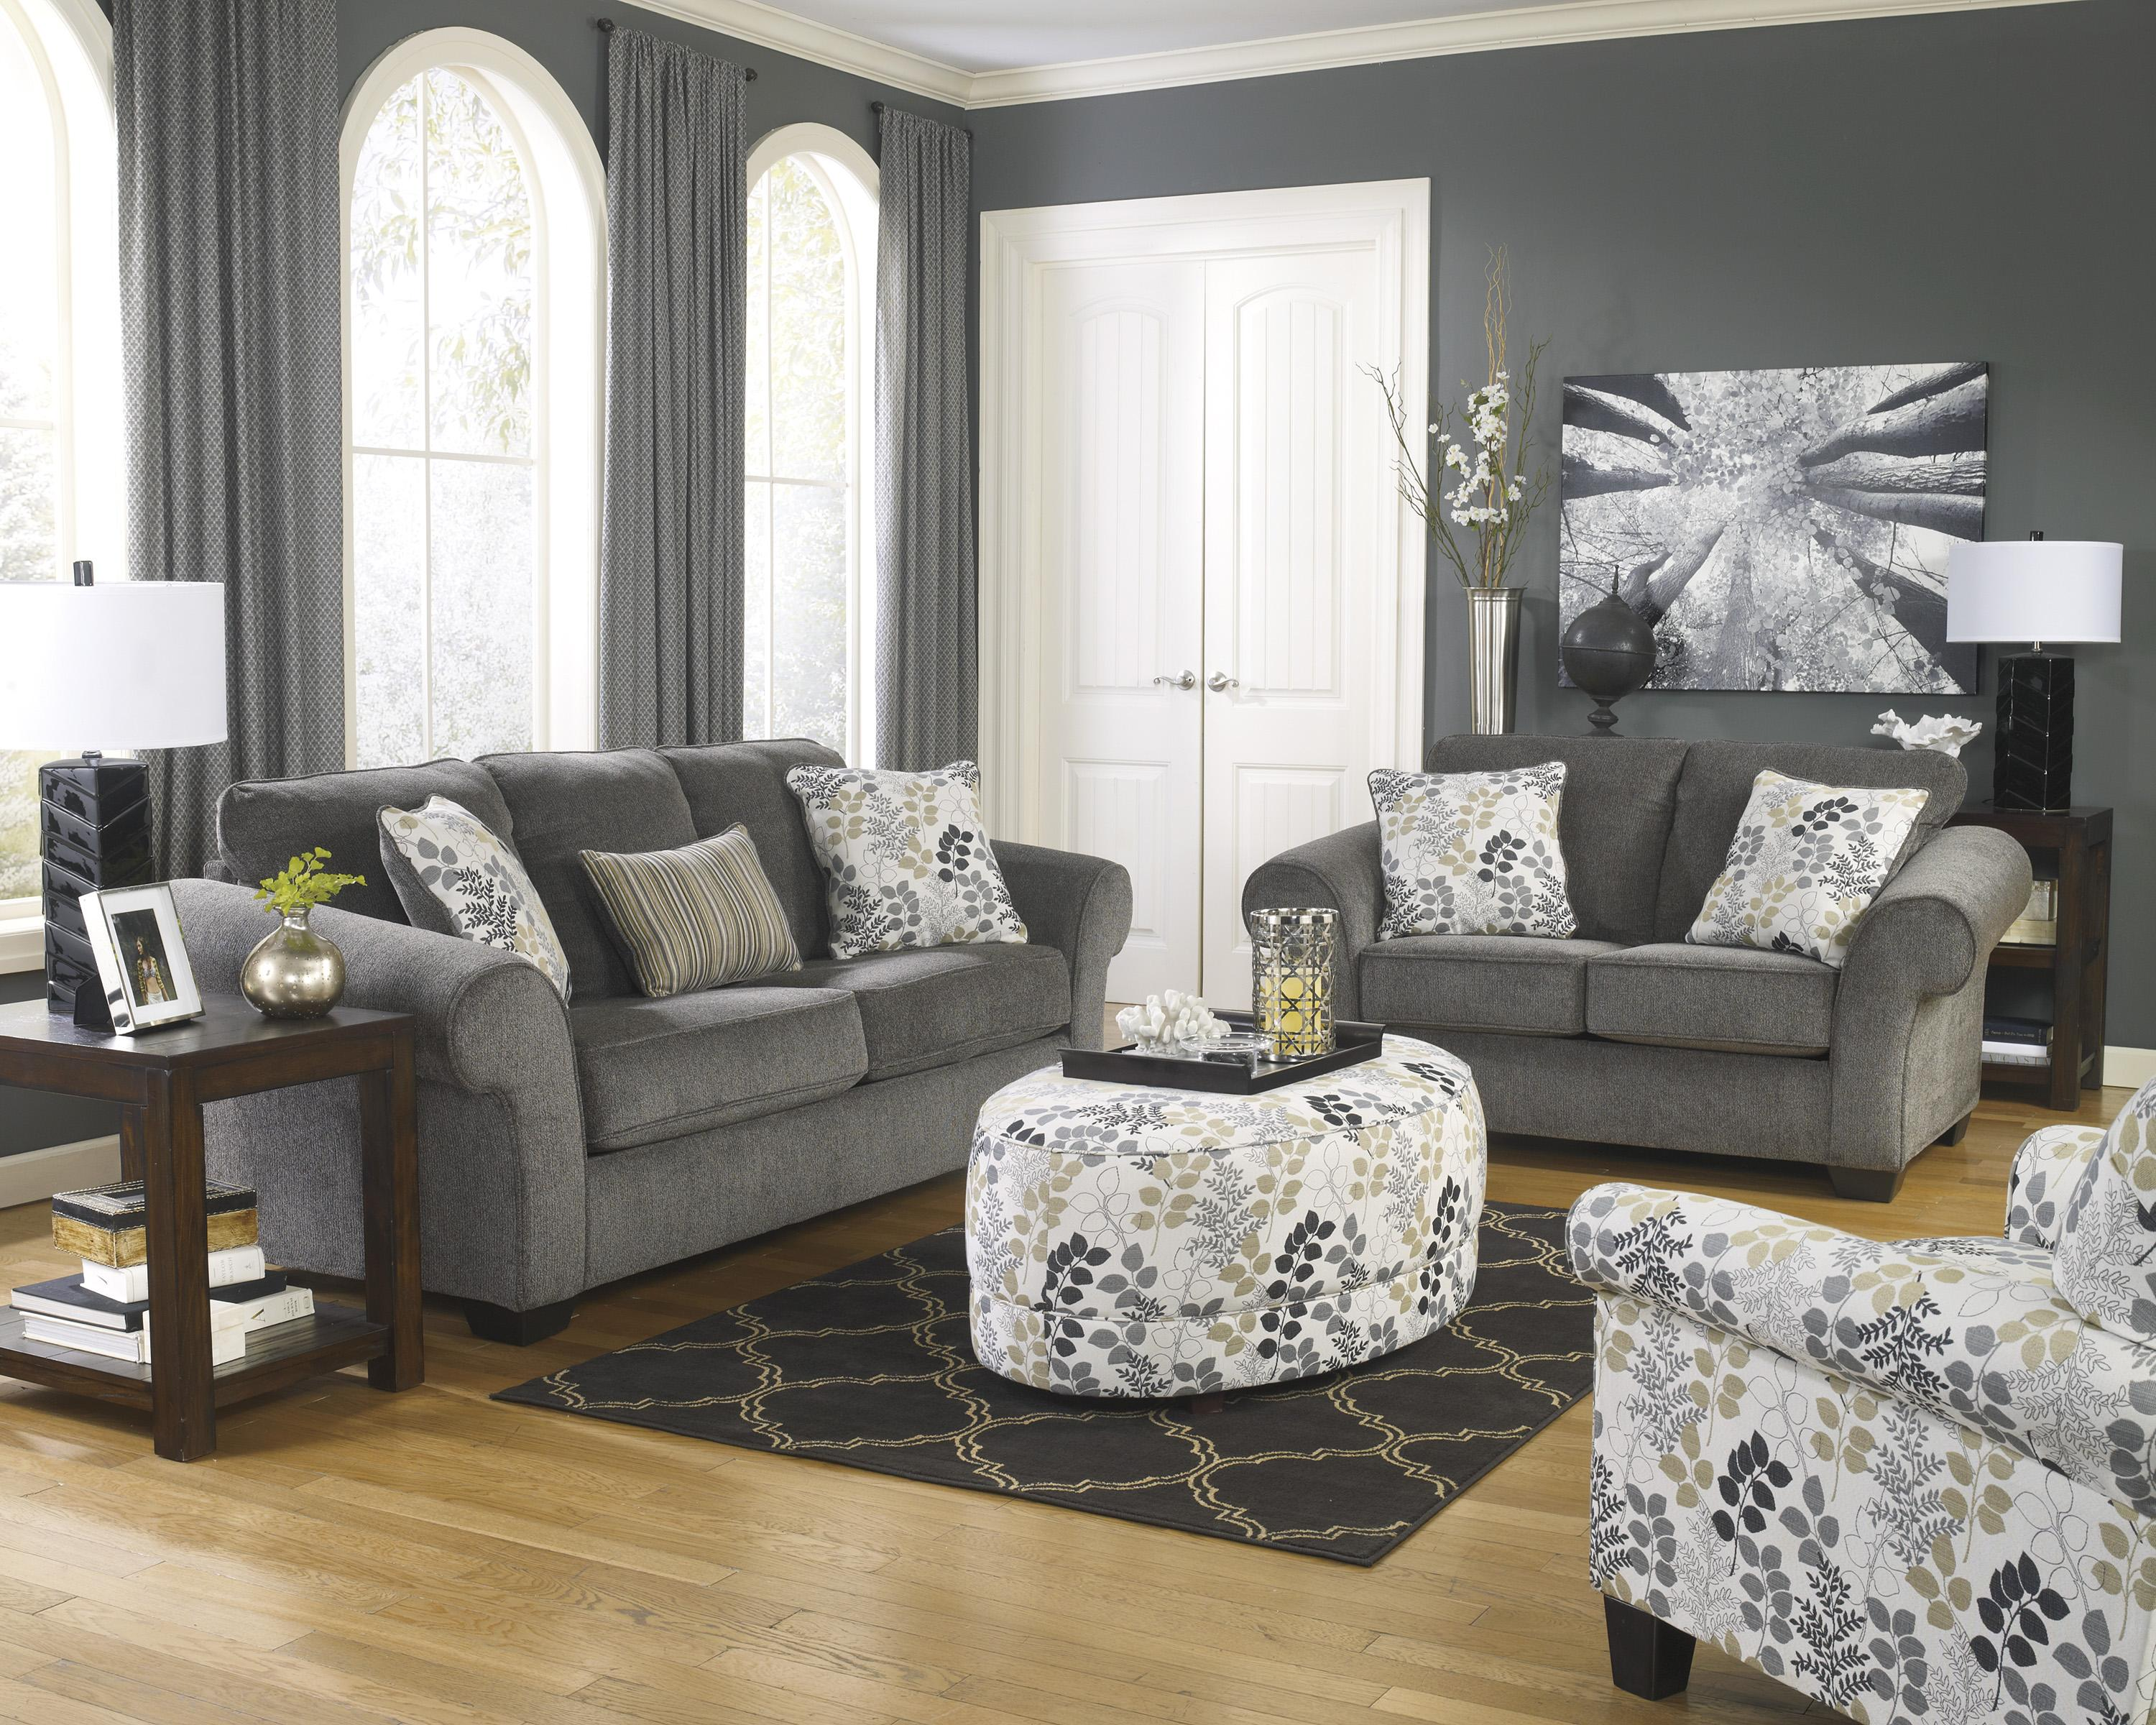 Signature Design by Ashley Makonnen - Charcoal Stationary Living Room Group - Item Number: 78000 Living Room Group 6